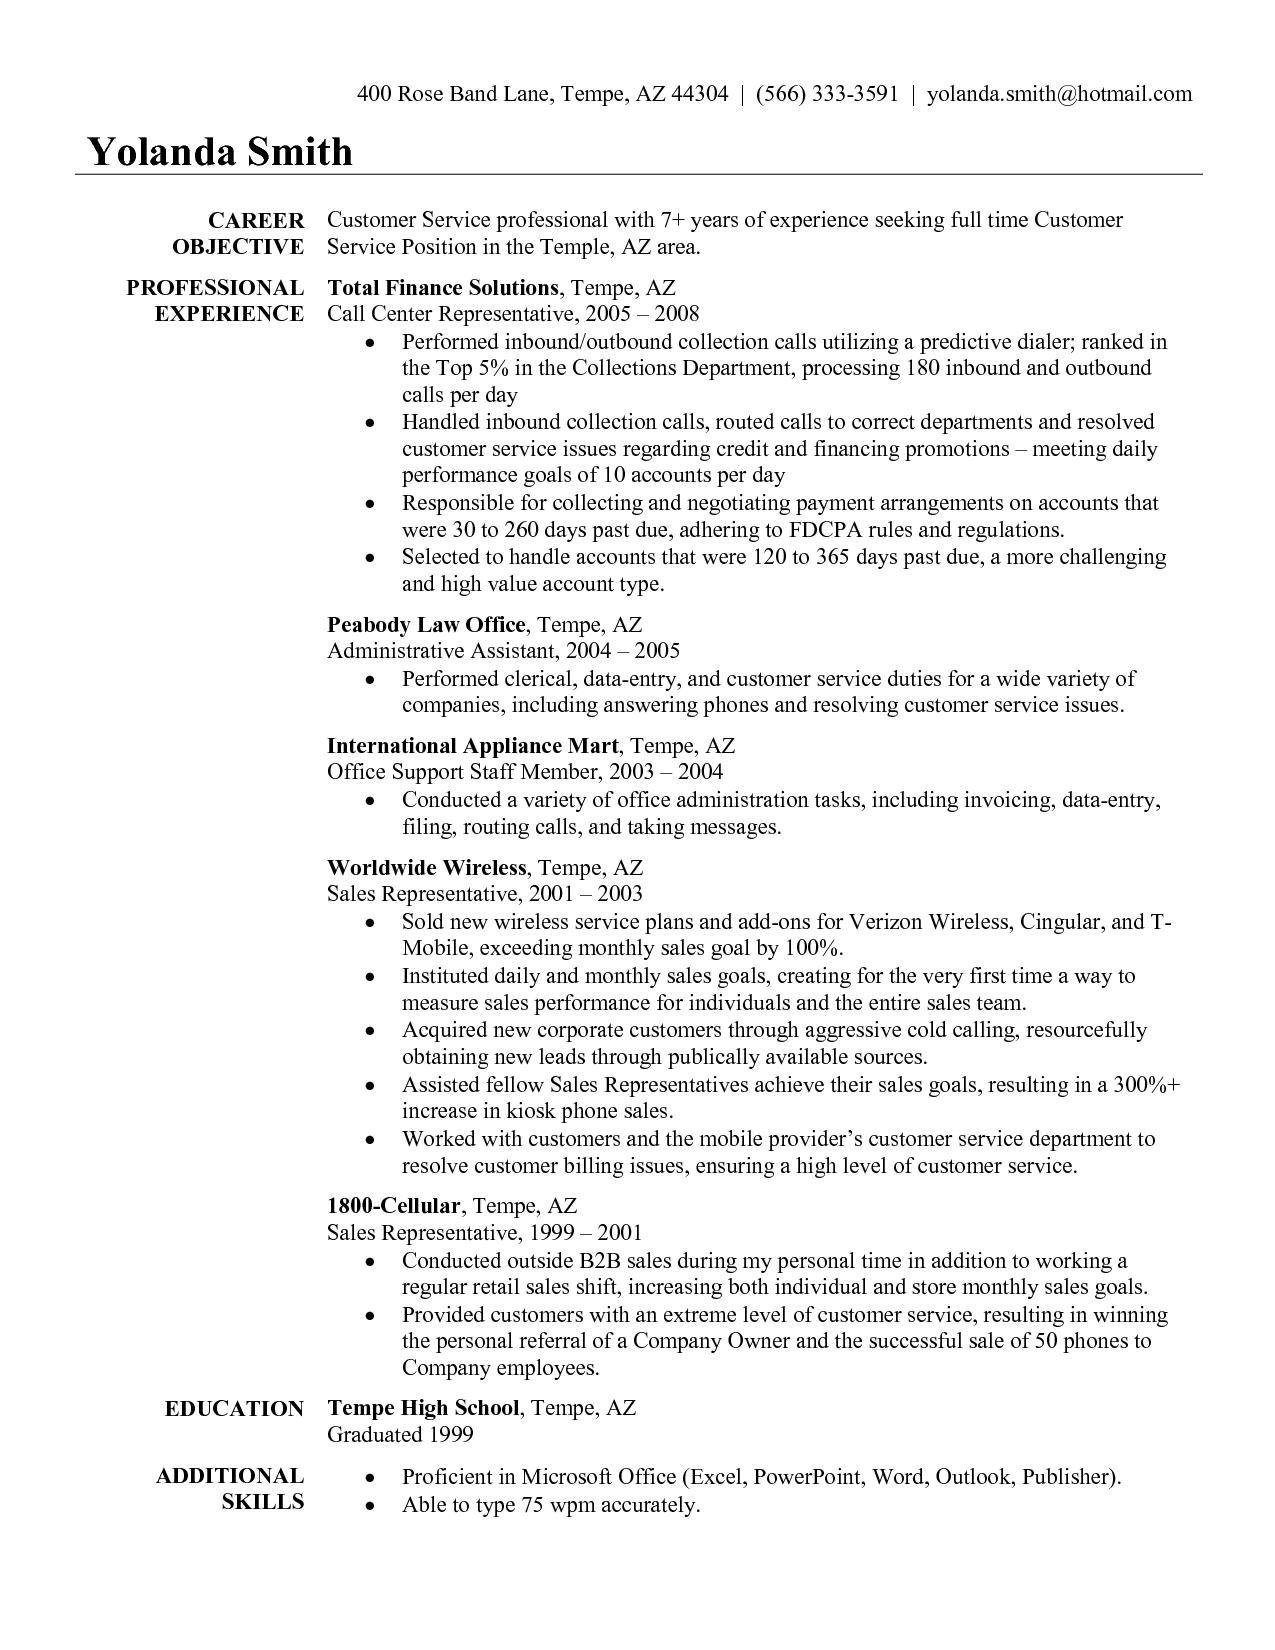 Traffic Customer Resume Examplescustomer Service Examples Skillscustomer Objective